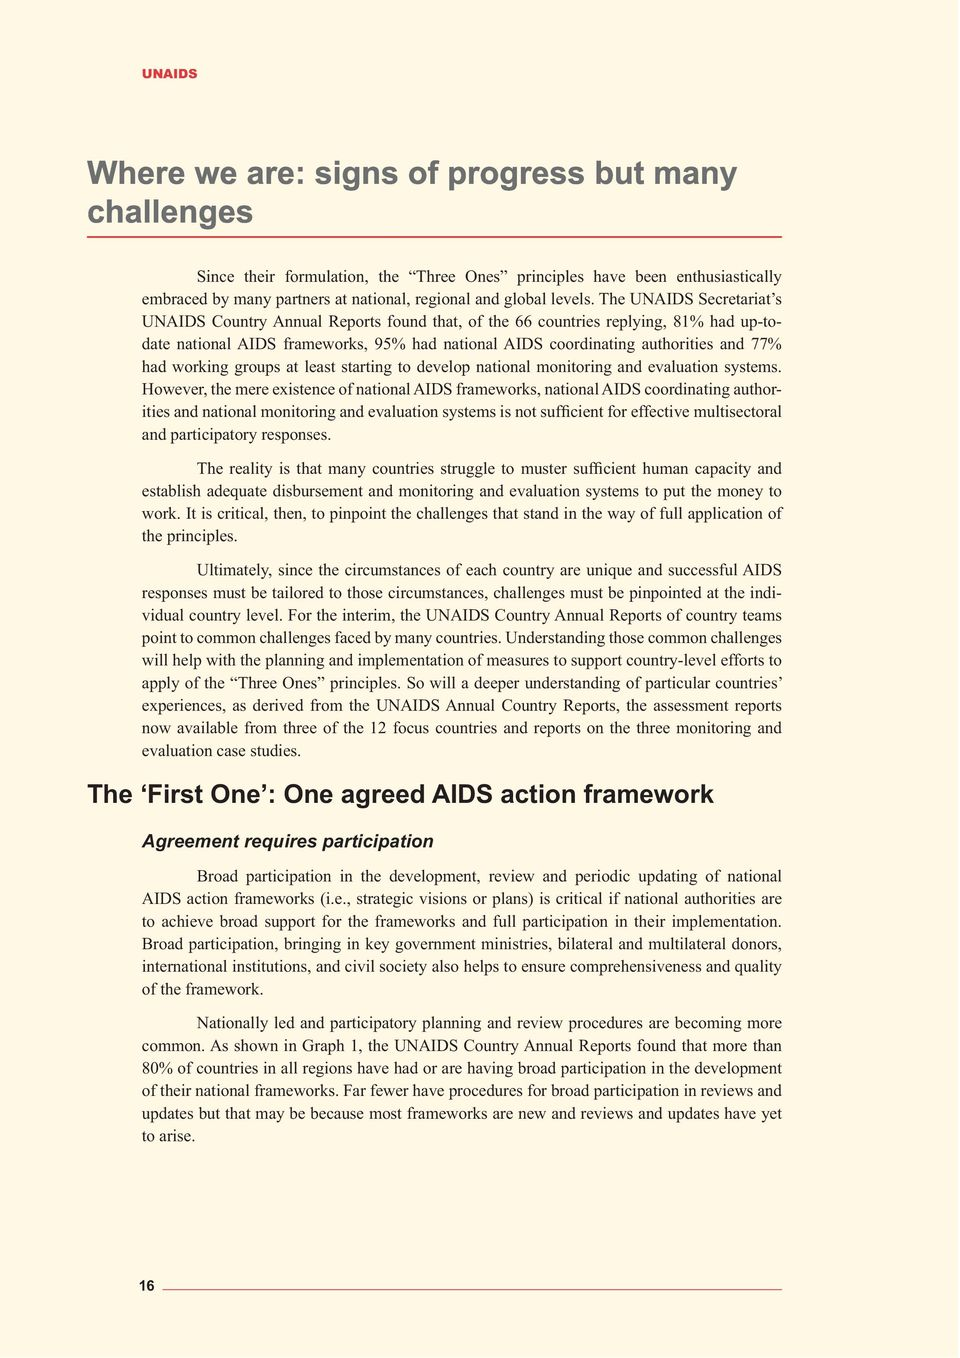 The UNAIDS Secretariat s UNAIDS Country Annual Reports found that, of the 66 countries replying, 81% had up-todate national AIDS frameworks, 95% had national AIDS coordinating authorities and 77% had